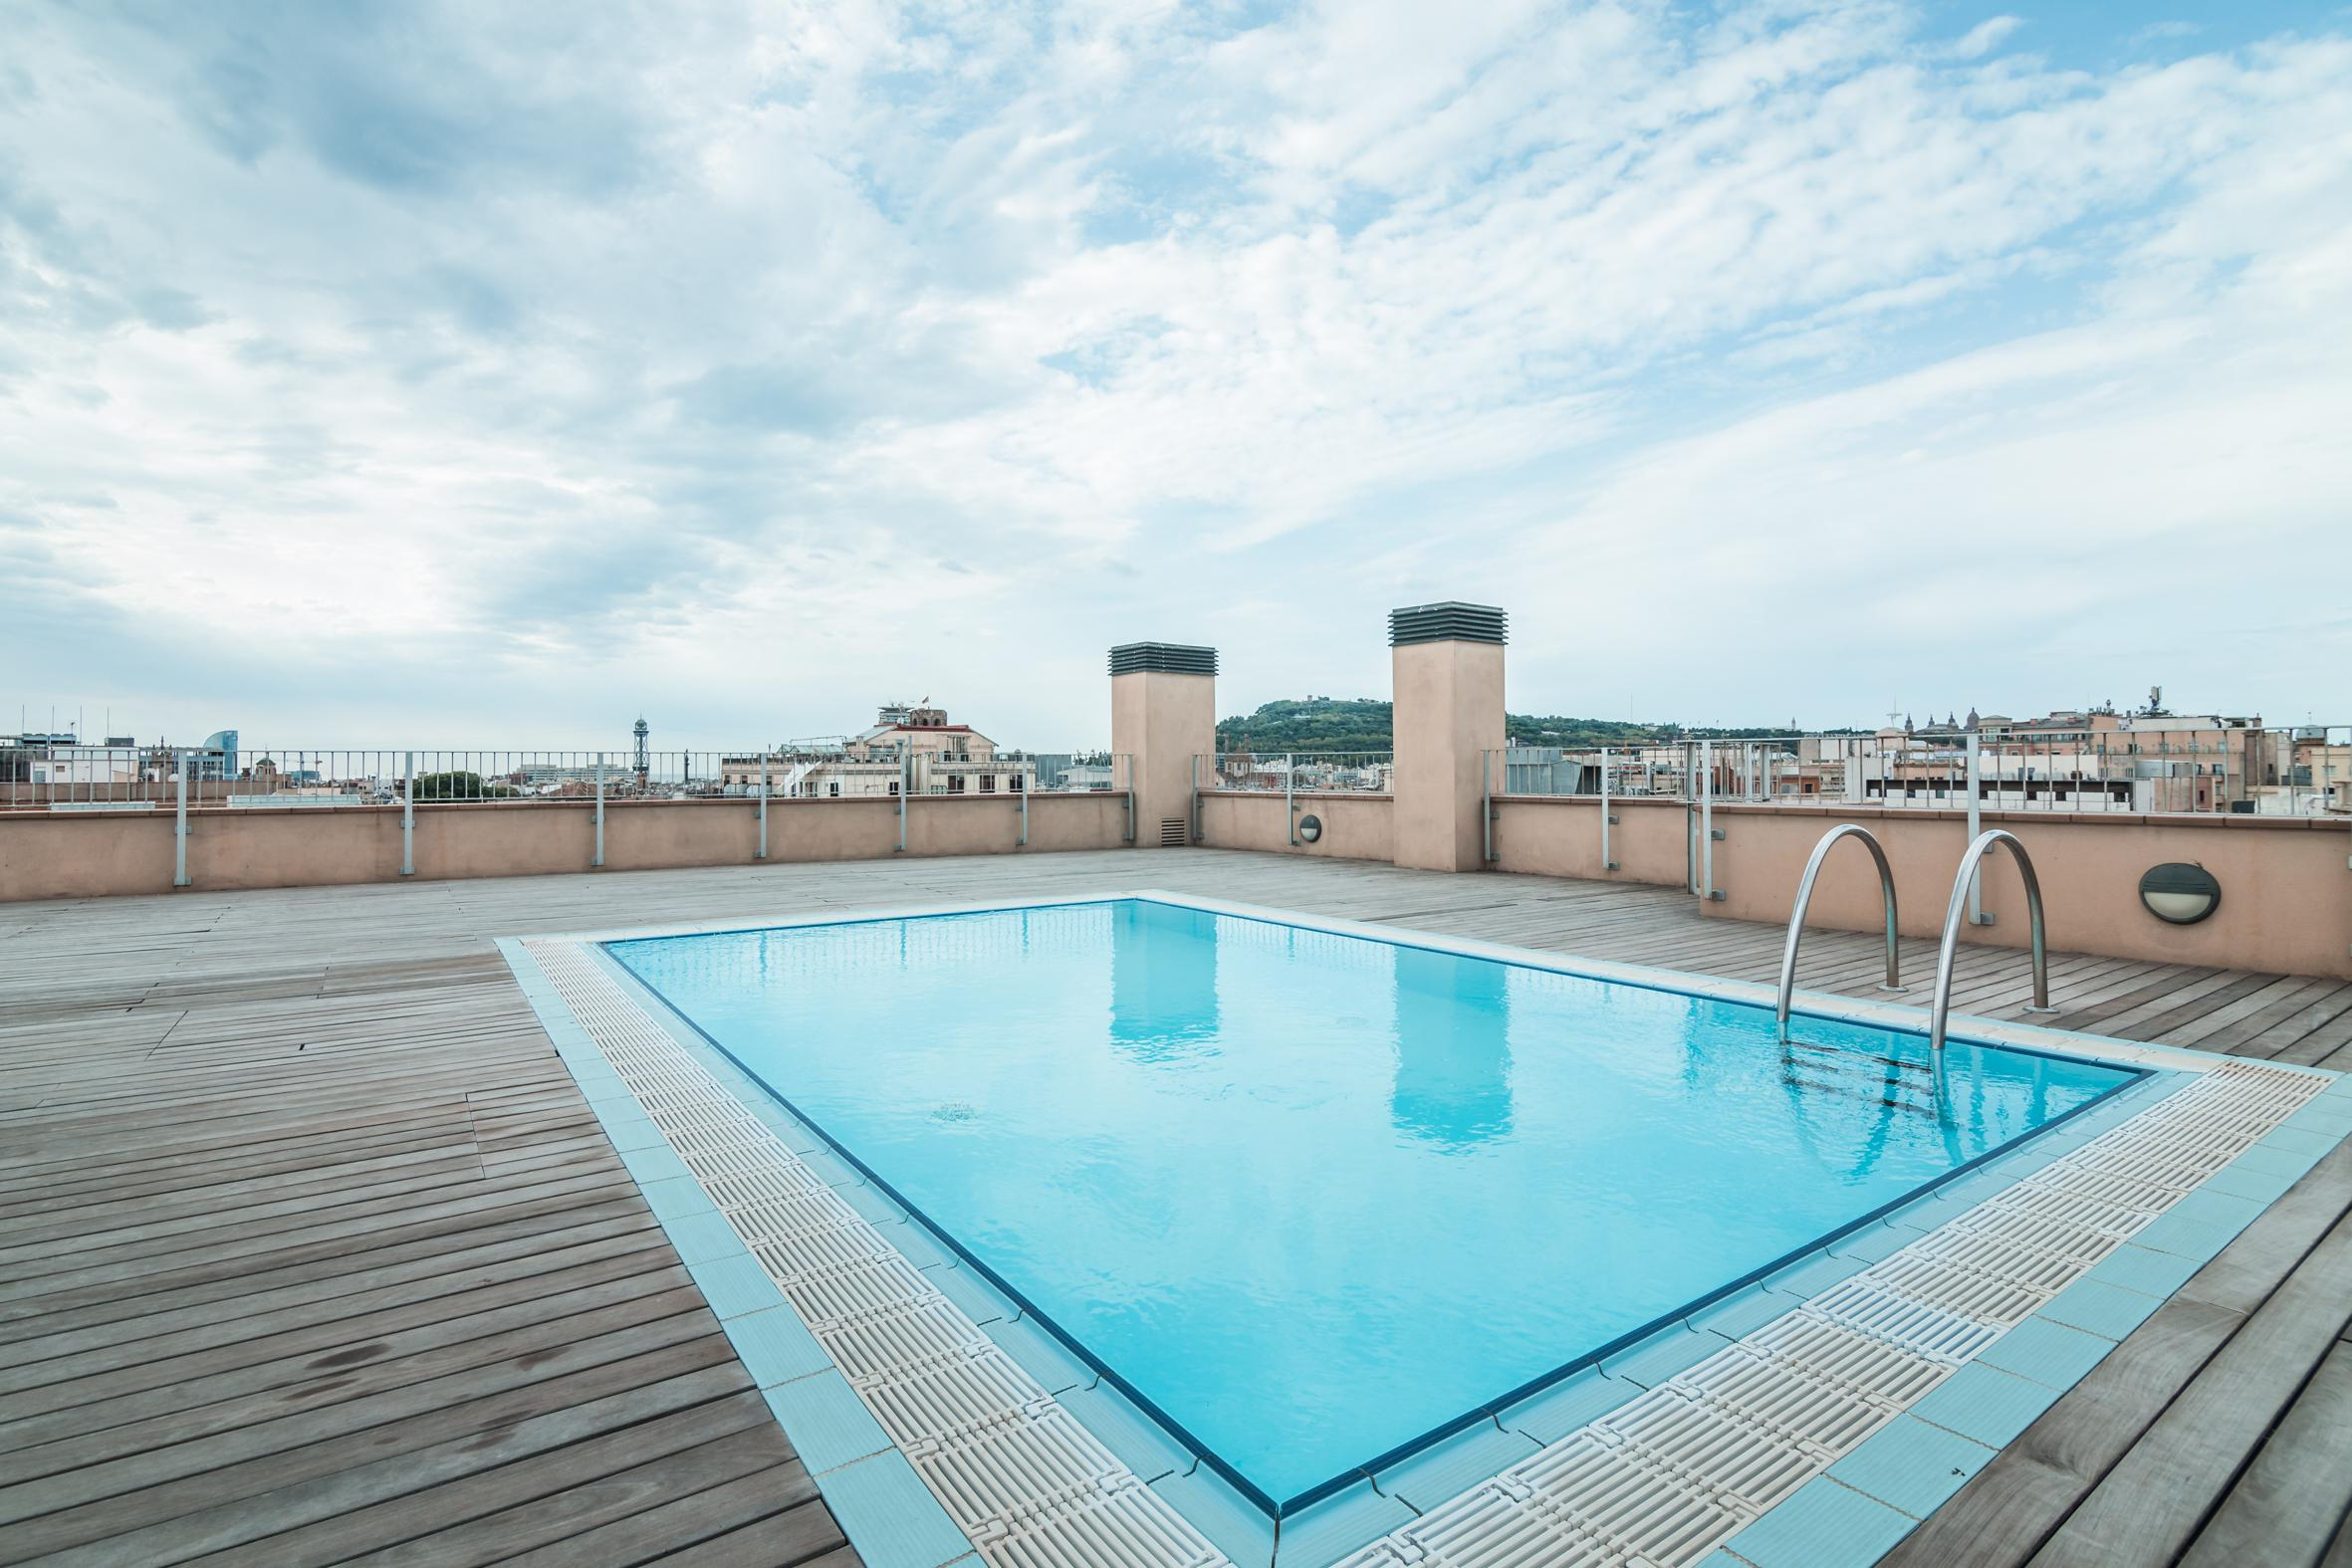 194056 Flat for sale in Ciutat Vella, Barri Gótic 3